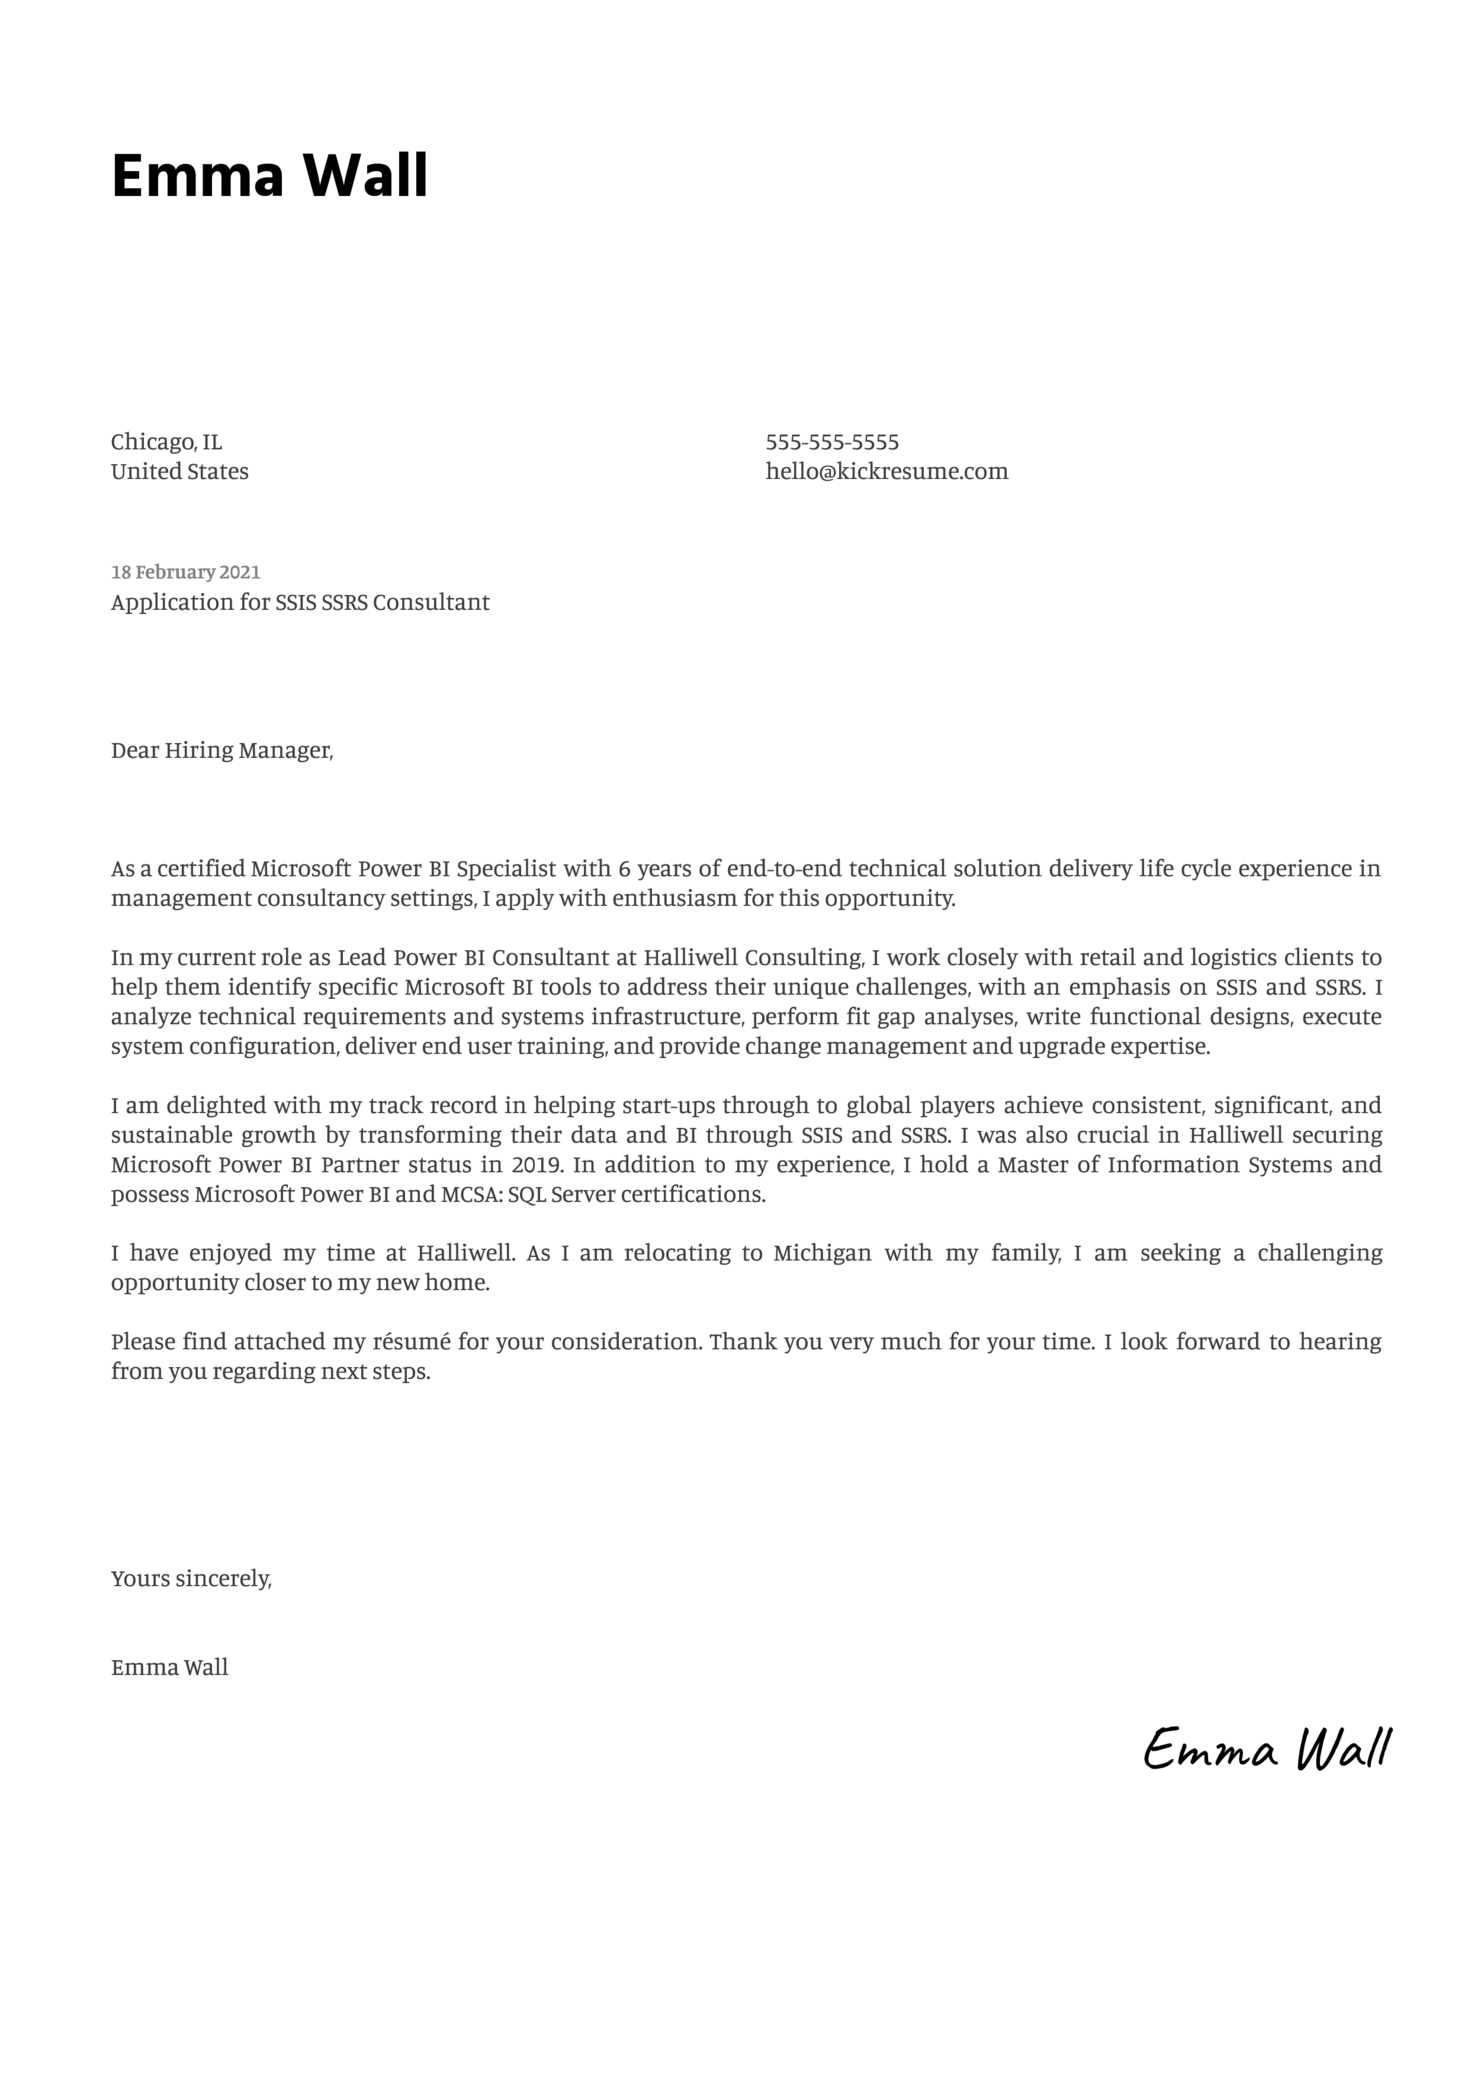 SSIS SSRS Consultant Cover Letter Sample